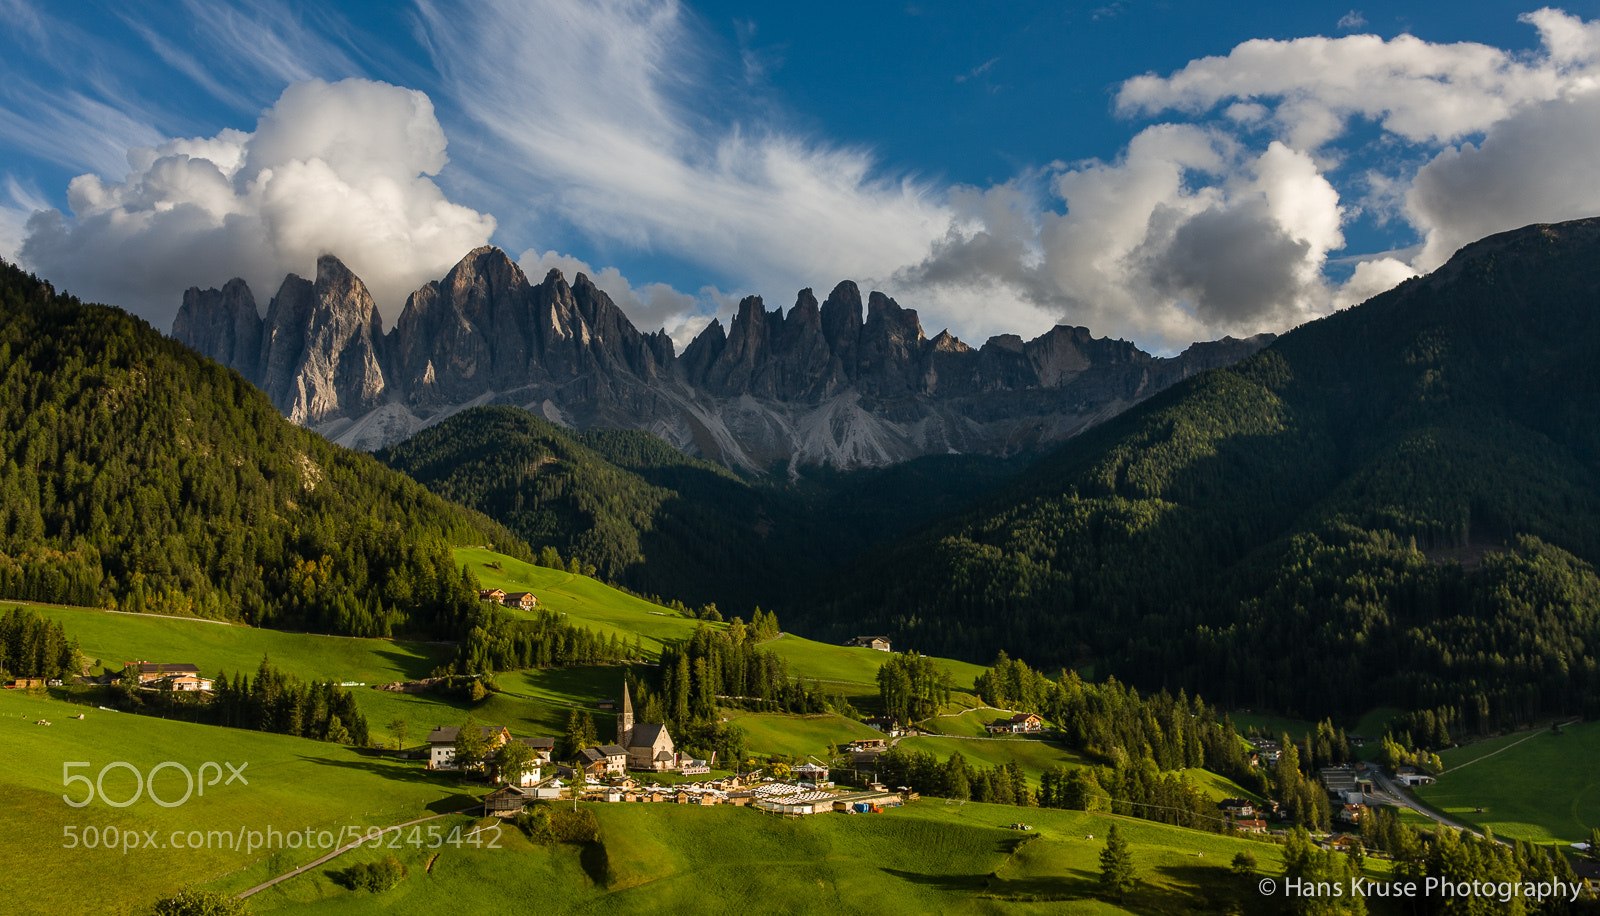 Photograph Santa Maddalena and Odle mountain peaks by Hans Kruse on 500px